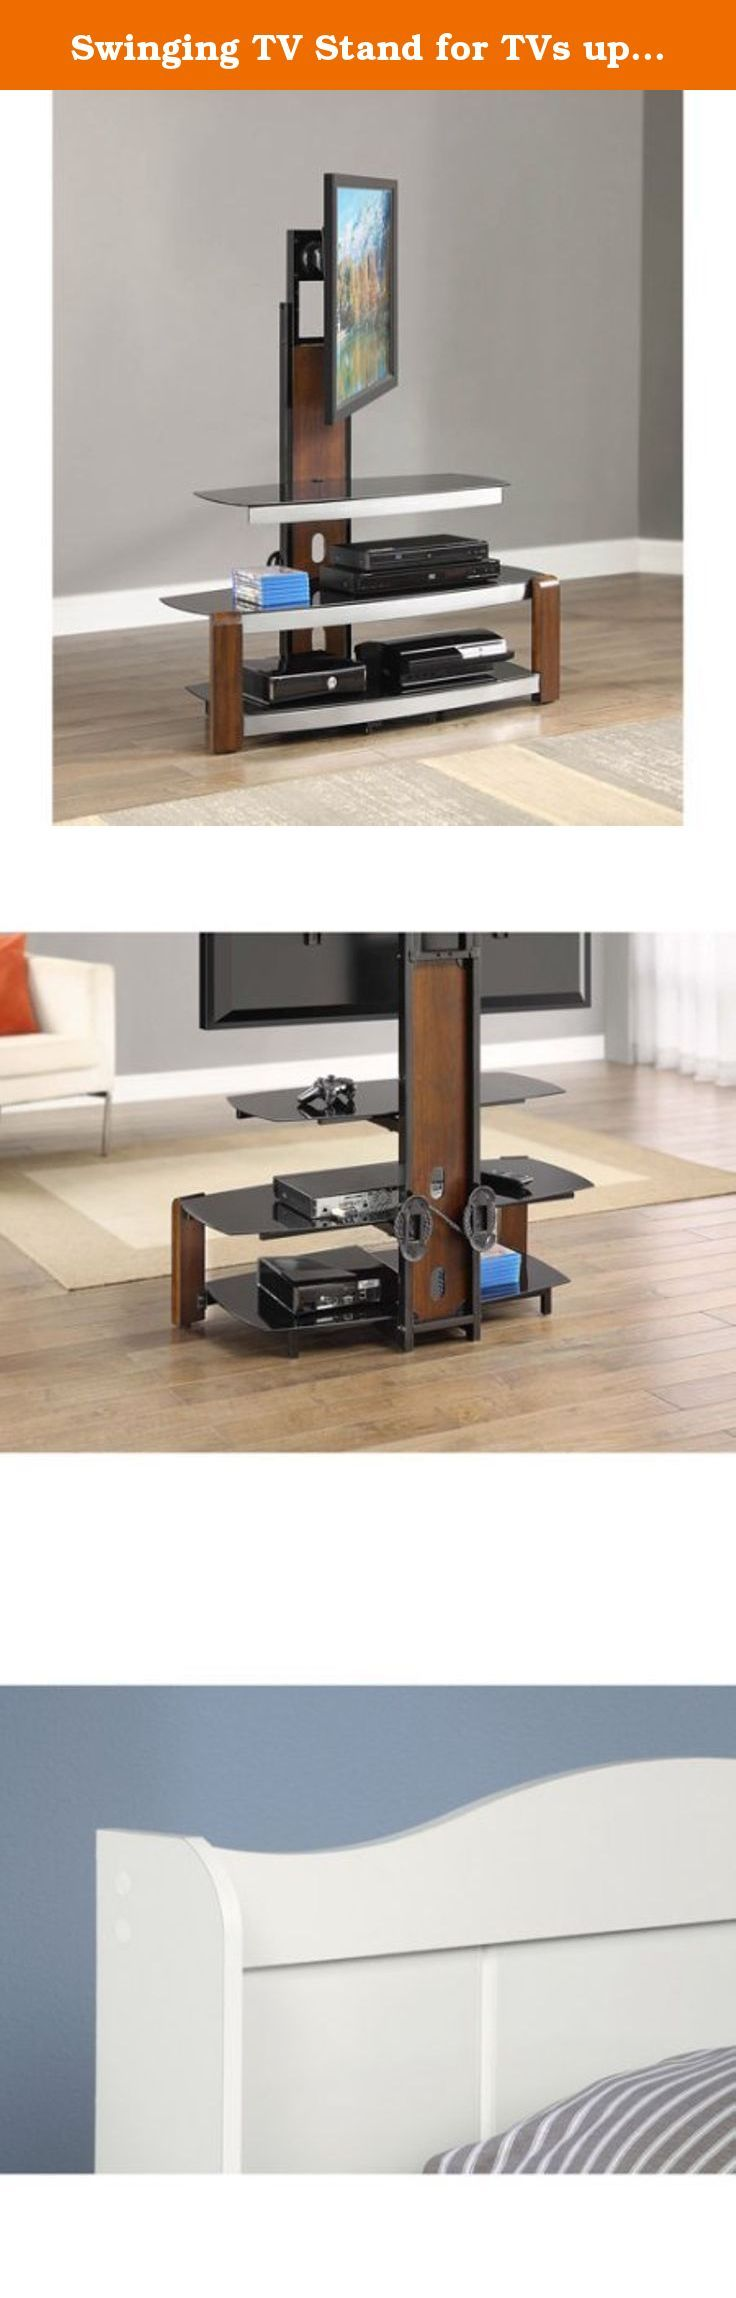 """Swinging TV Stand for TVs up to 47"""", Brown Cherry Brown cherry finish with silver accents Sturdy steel frame construction Brown cherry finish with silver accents Product Dimensions: 41""""L x 20""""W x 54""""H. Product Features TV stand accommodates most flat panel TVs up to 47"""" with a maximum weight of 135 lbs Brown cherry finish with silver accents 3 tempered black glass shelves with ample storage Cable organization wheels which allow the flat-panel TV stand to conceal TV and other player cables..."""